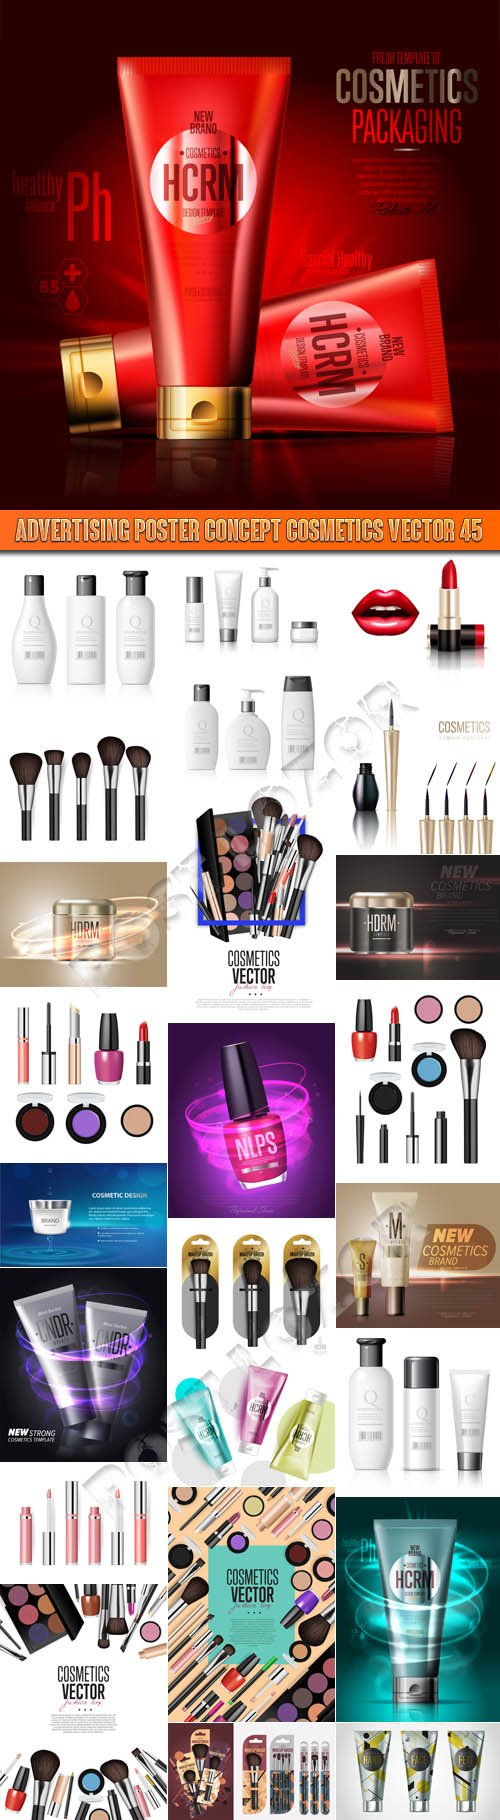 Advertising Poster Concept Cosmetics vector 45